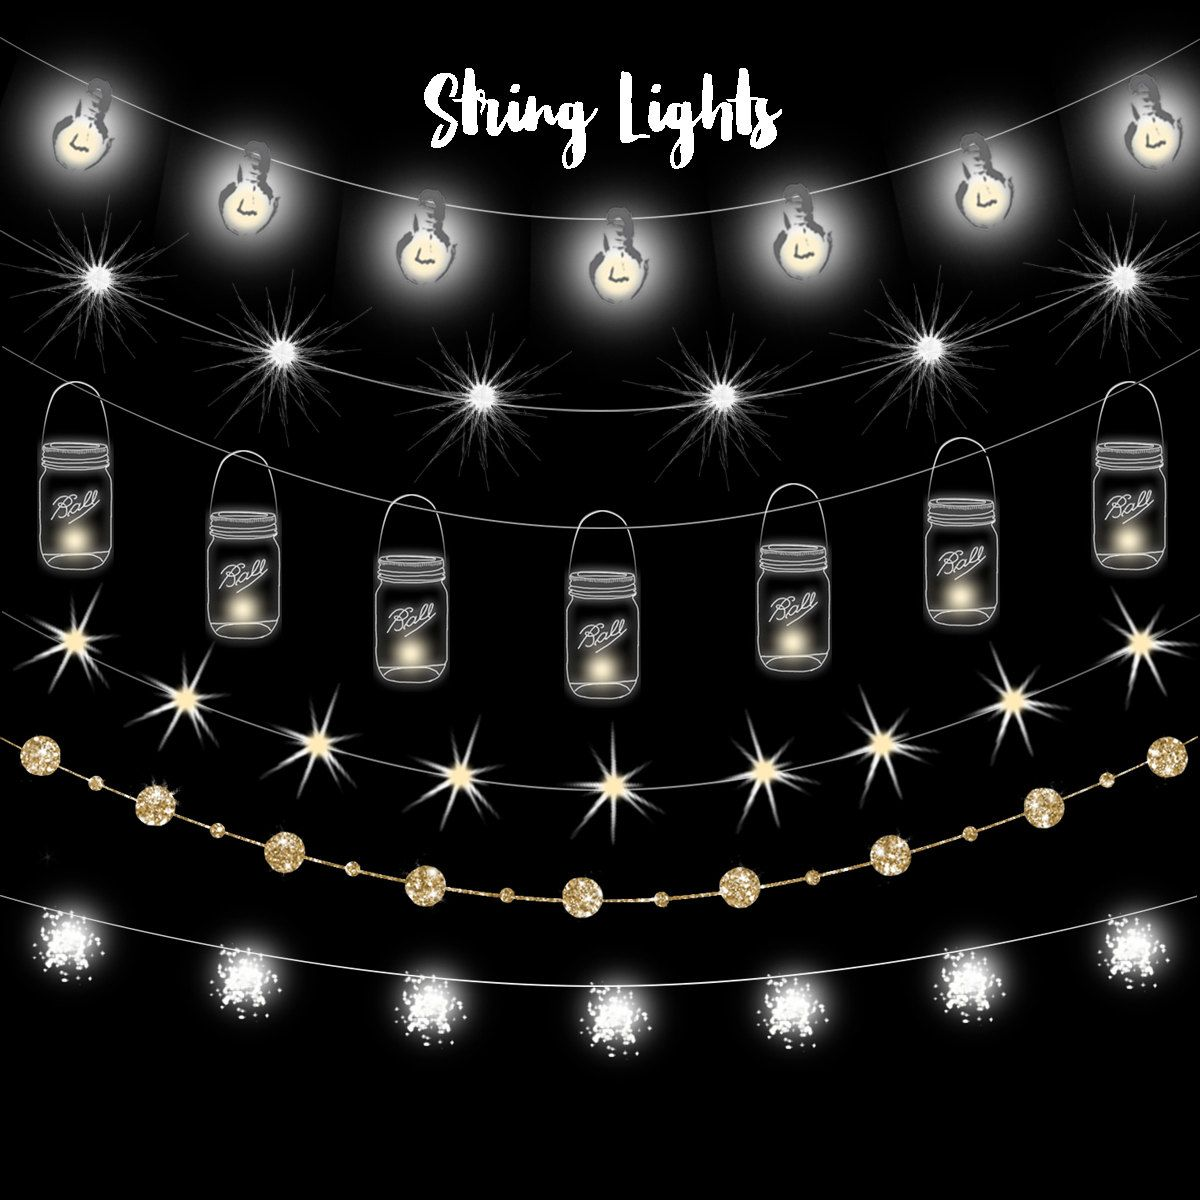 Light clipart lighting. String lights fairy party